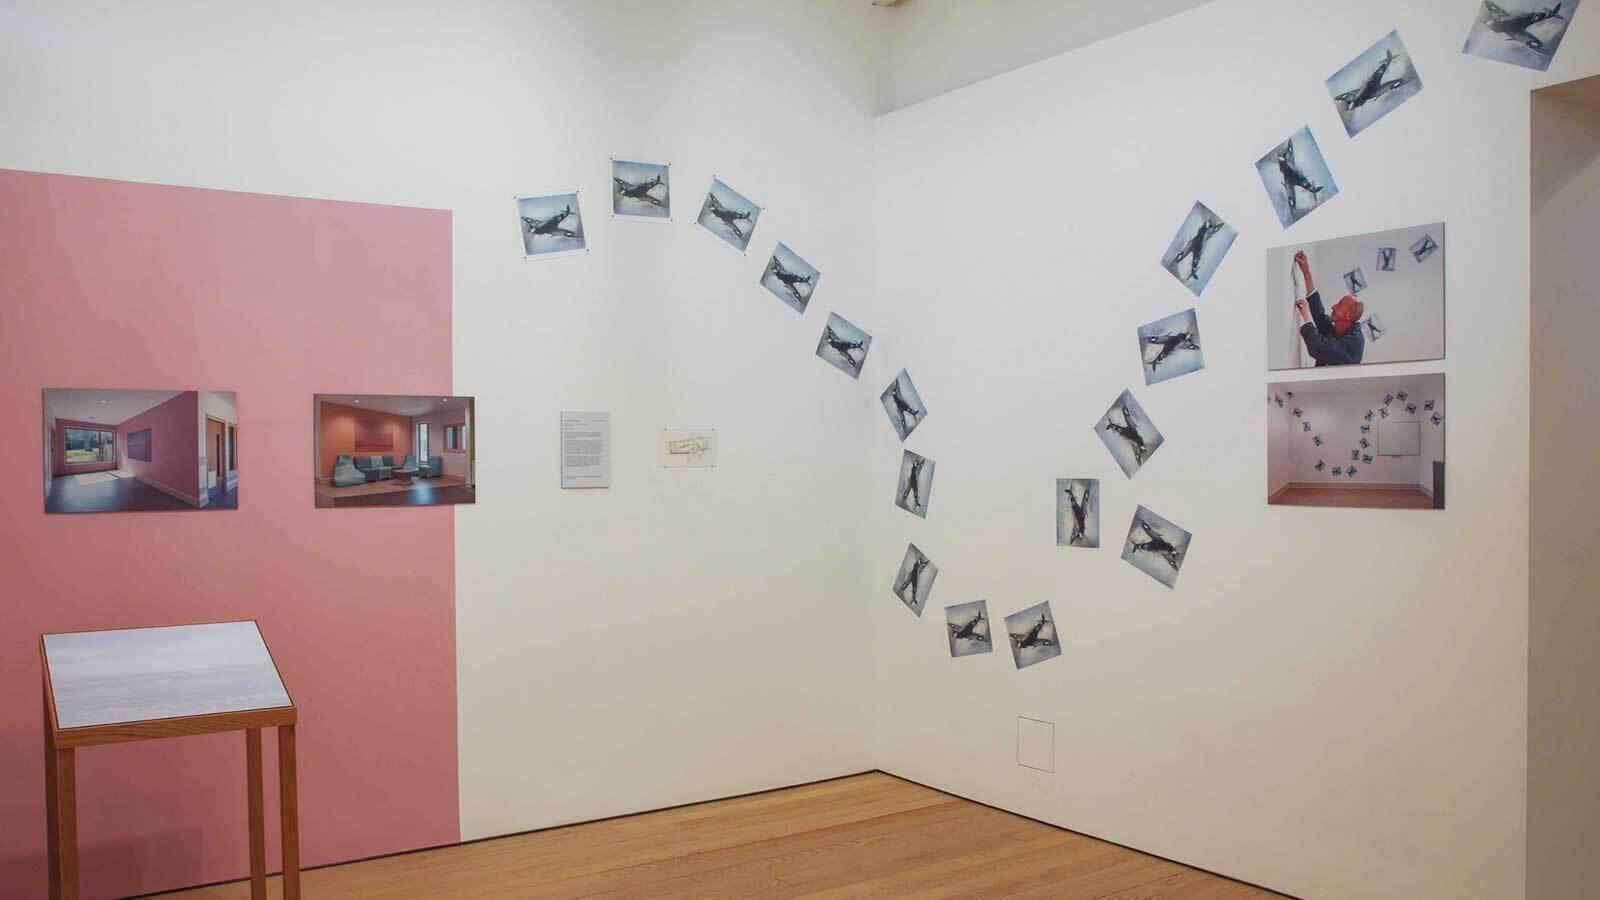 Photograph of hospital rooms exhibition at exeter phoenix